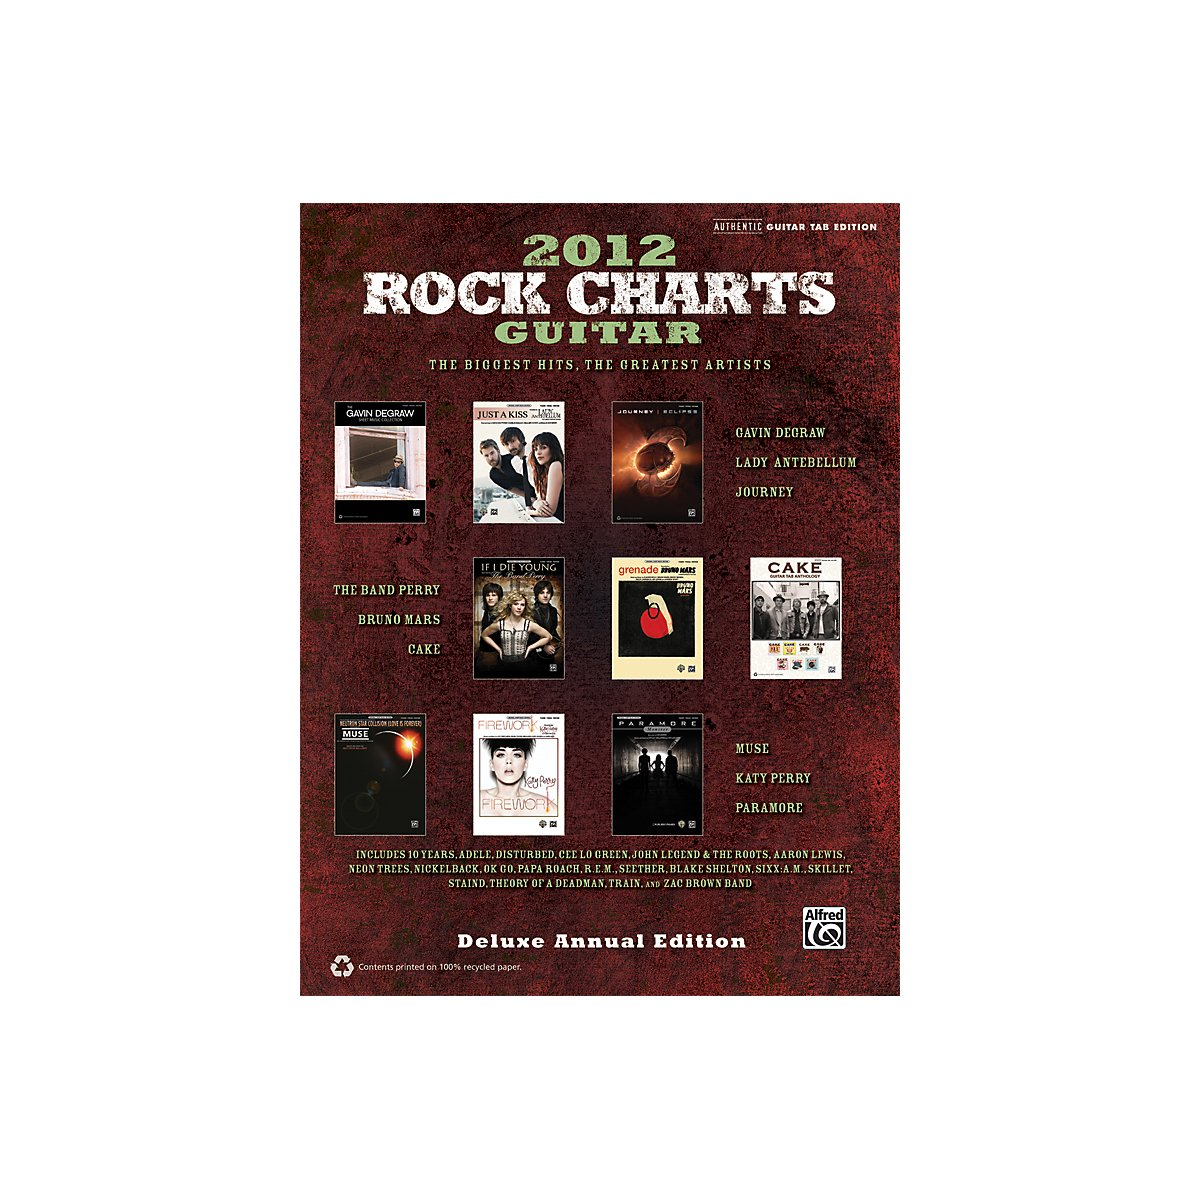 Amazon Alfred Rock Charts Guitar 2012 Deluxe Annual Edition